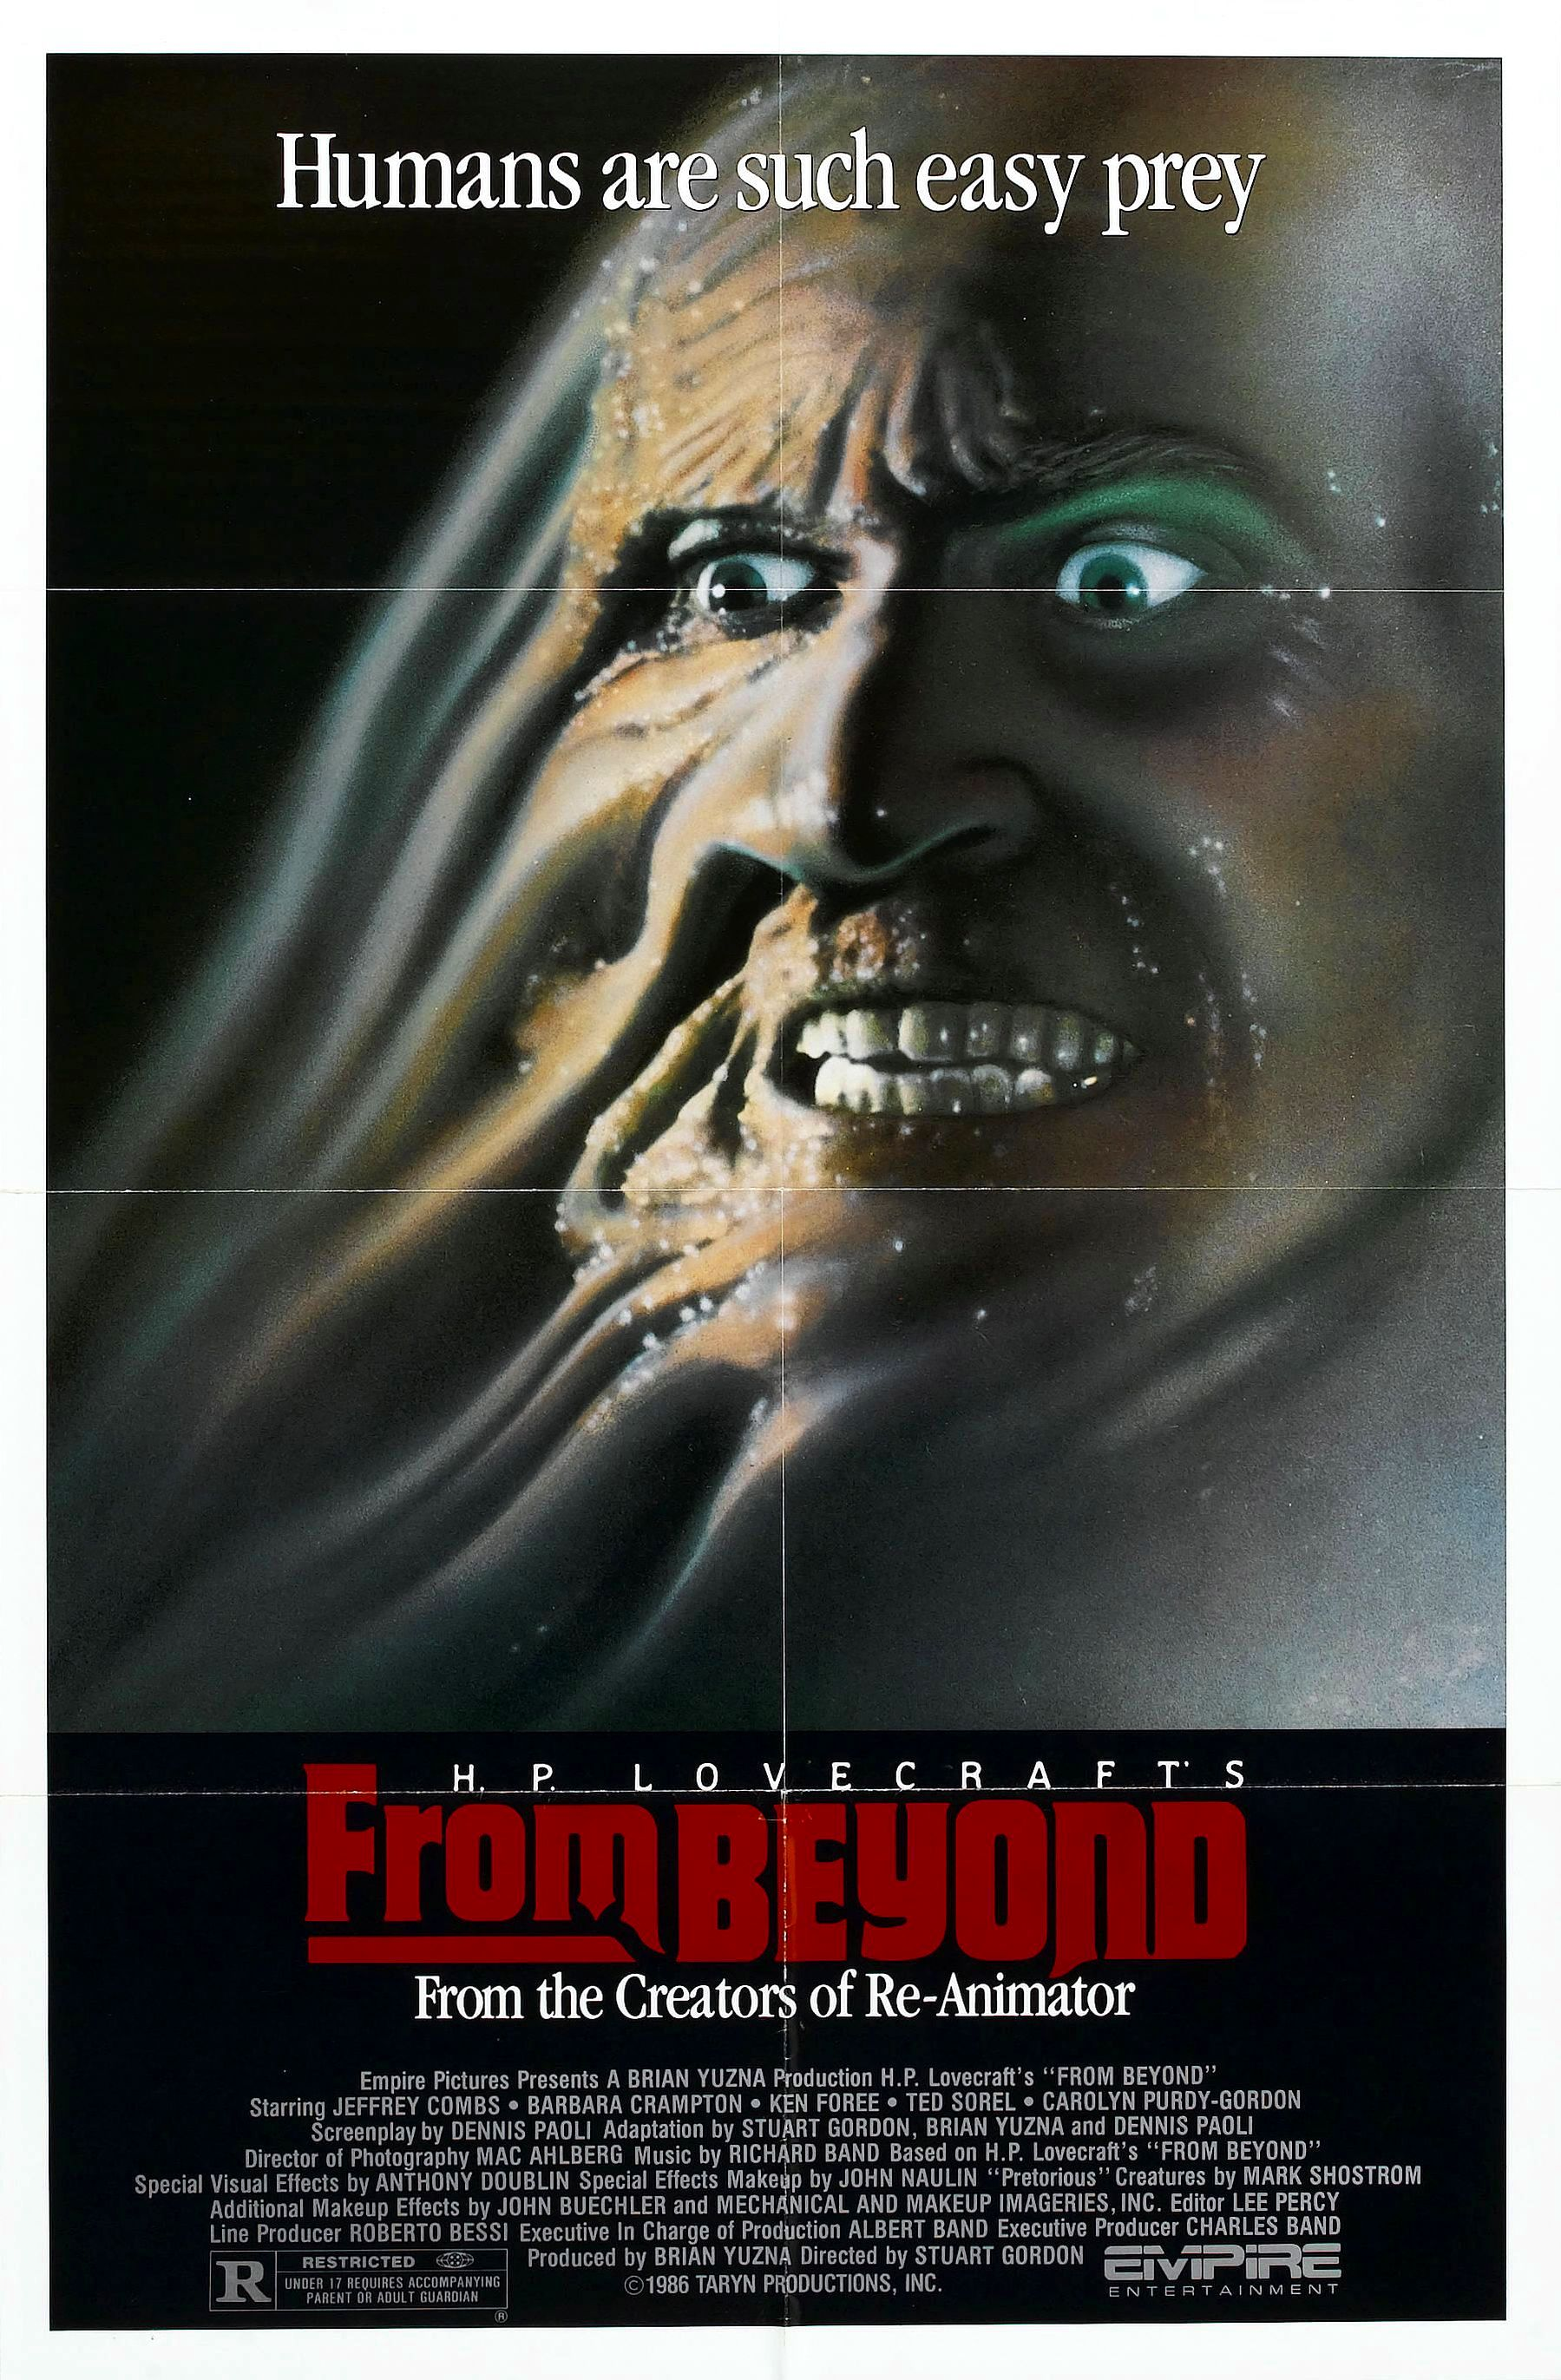 from_beyond_poster_1986_01.jpg